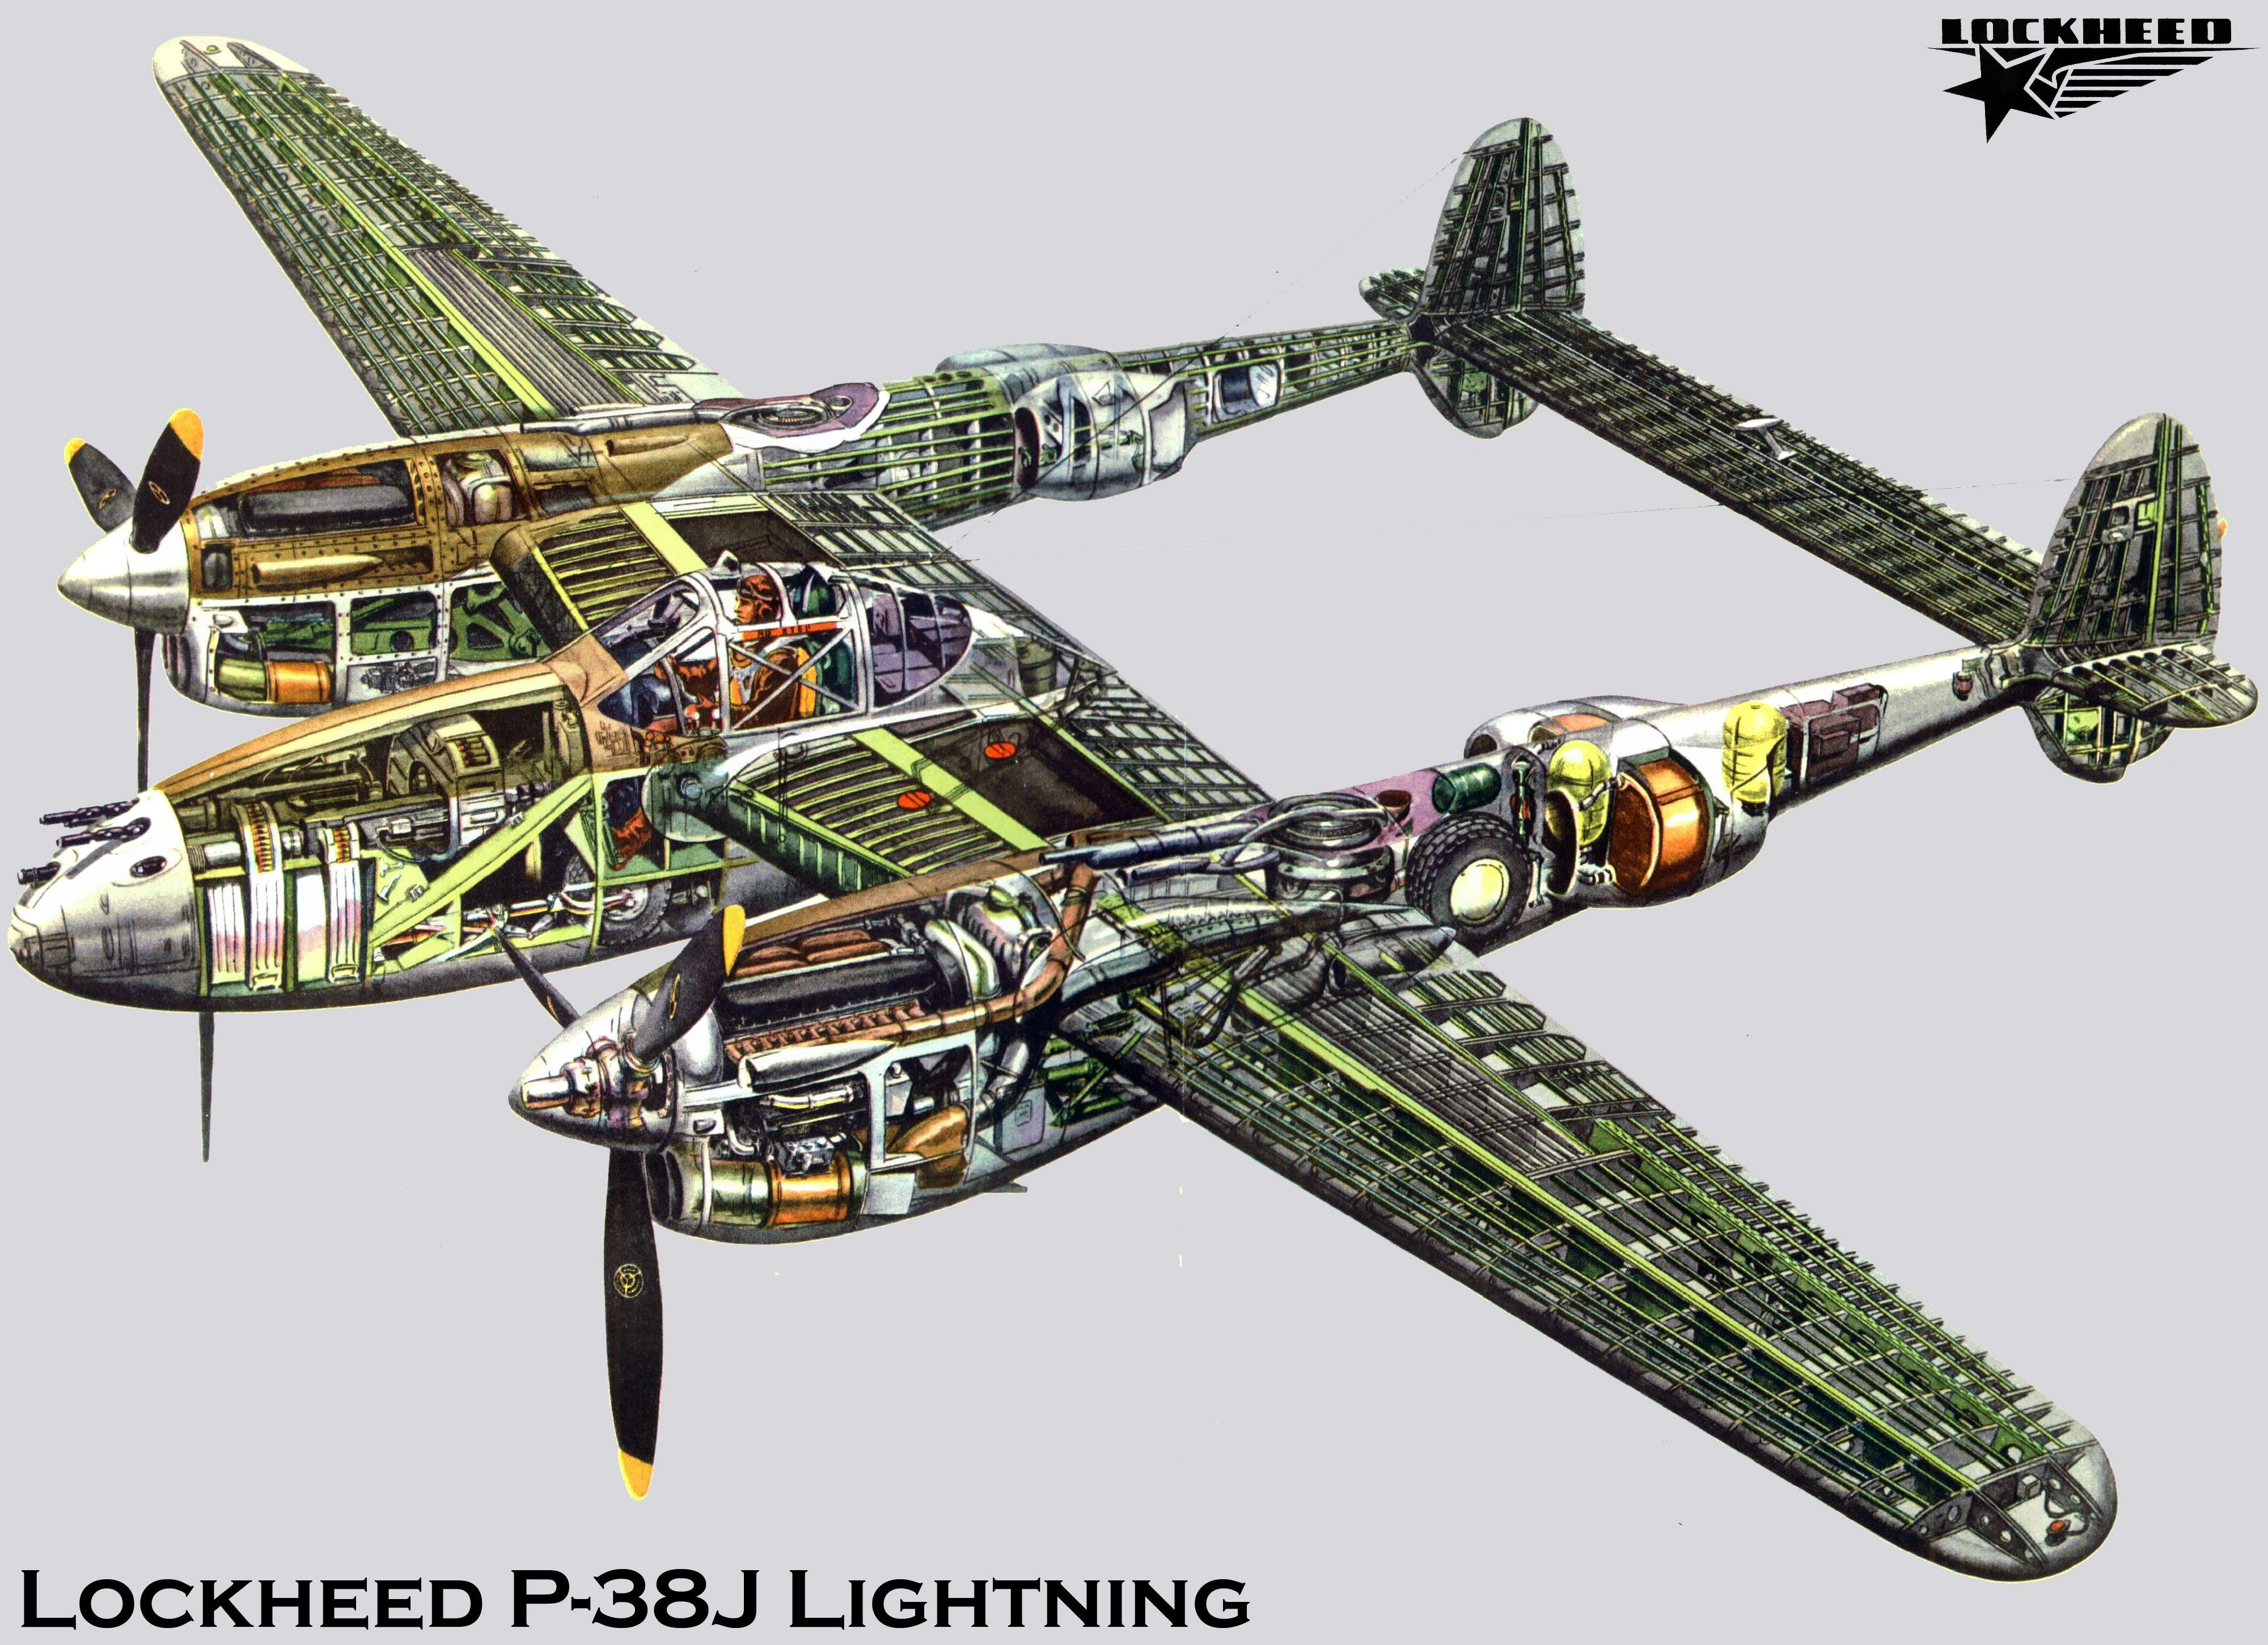 1874985, lockheed p 38 lightning category - computer wallpaper for ...